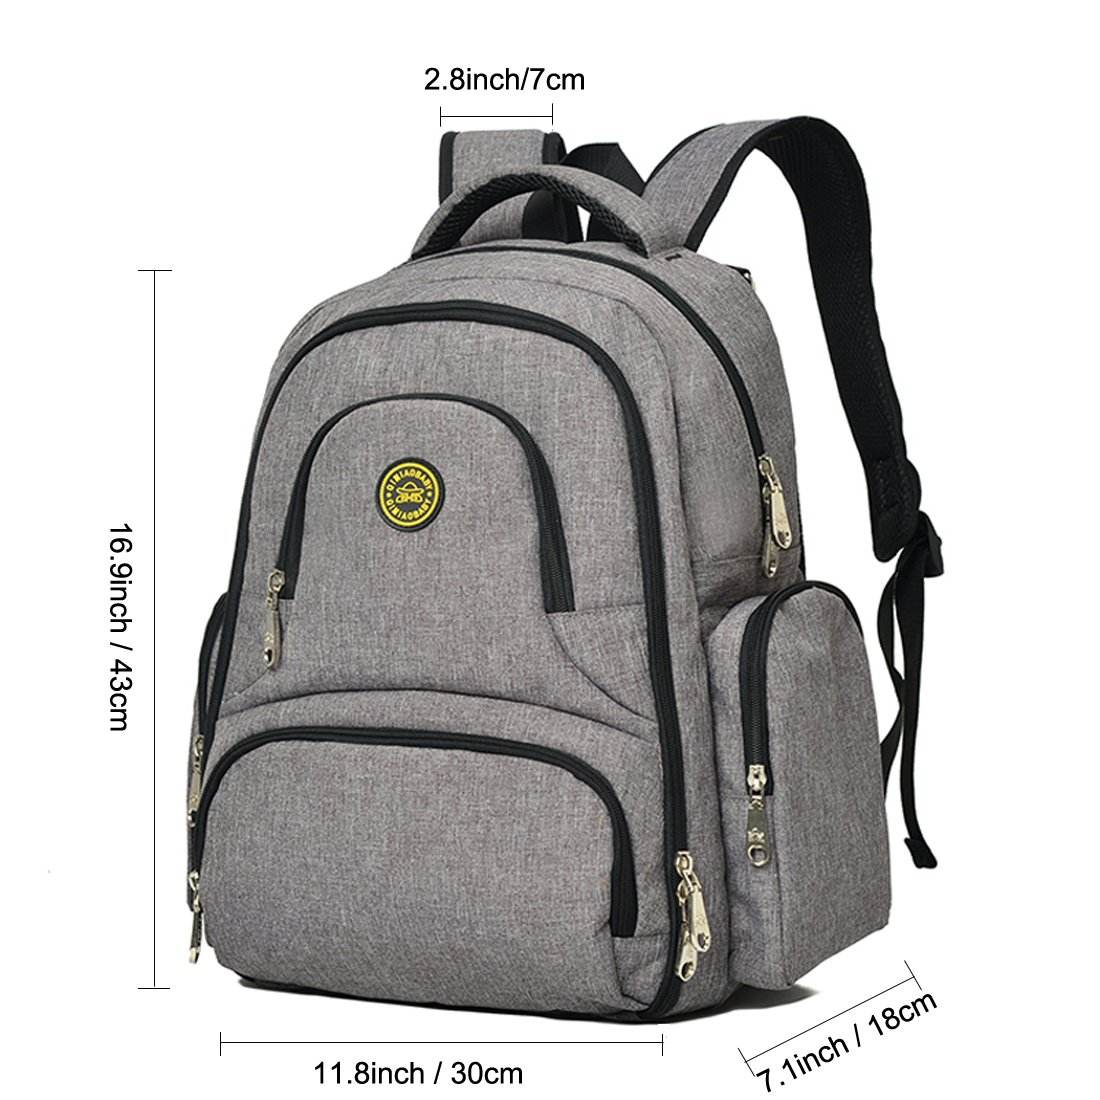 Lightweight 16 Pockets Water-resistant Backpack Diaper Bag with Insulated Bottle Pockets and Changing Mat Heather Grey Veewin